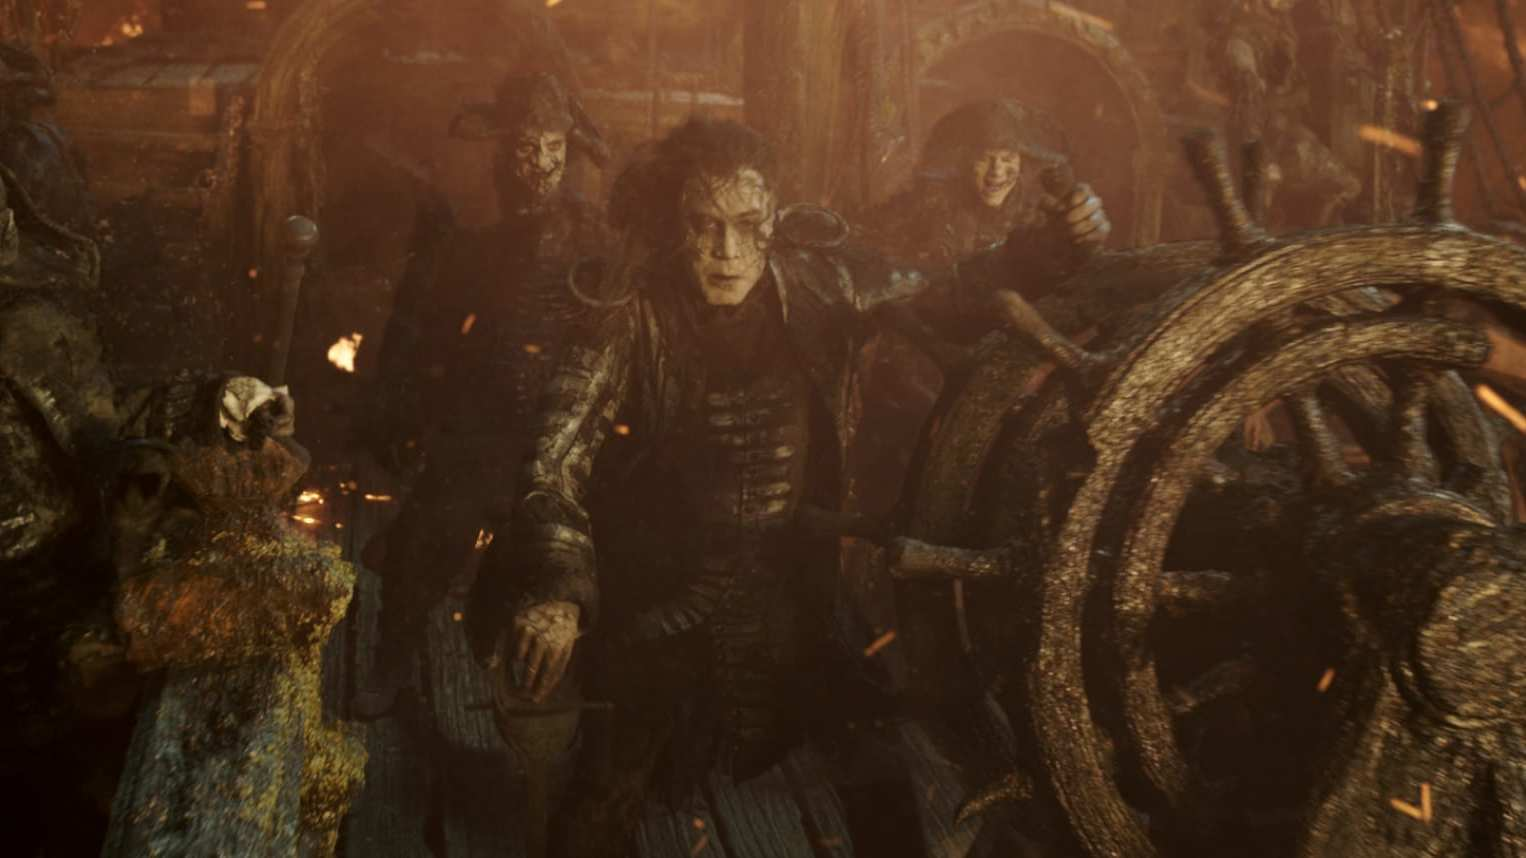 Captain Salazar, played by Javier Bardem, with his crew on his ship in the movie Pirates of the Caribbean: Dead Men Tell No Tales